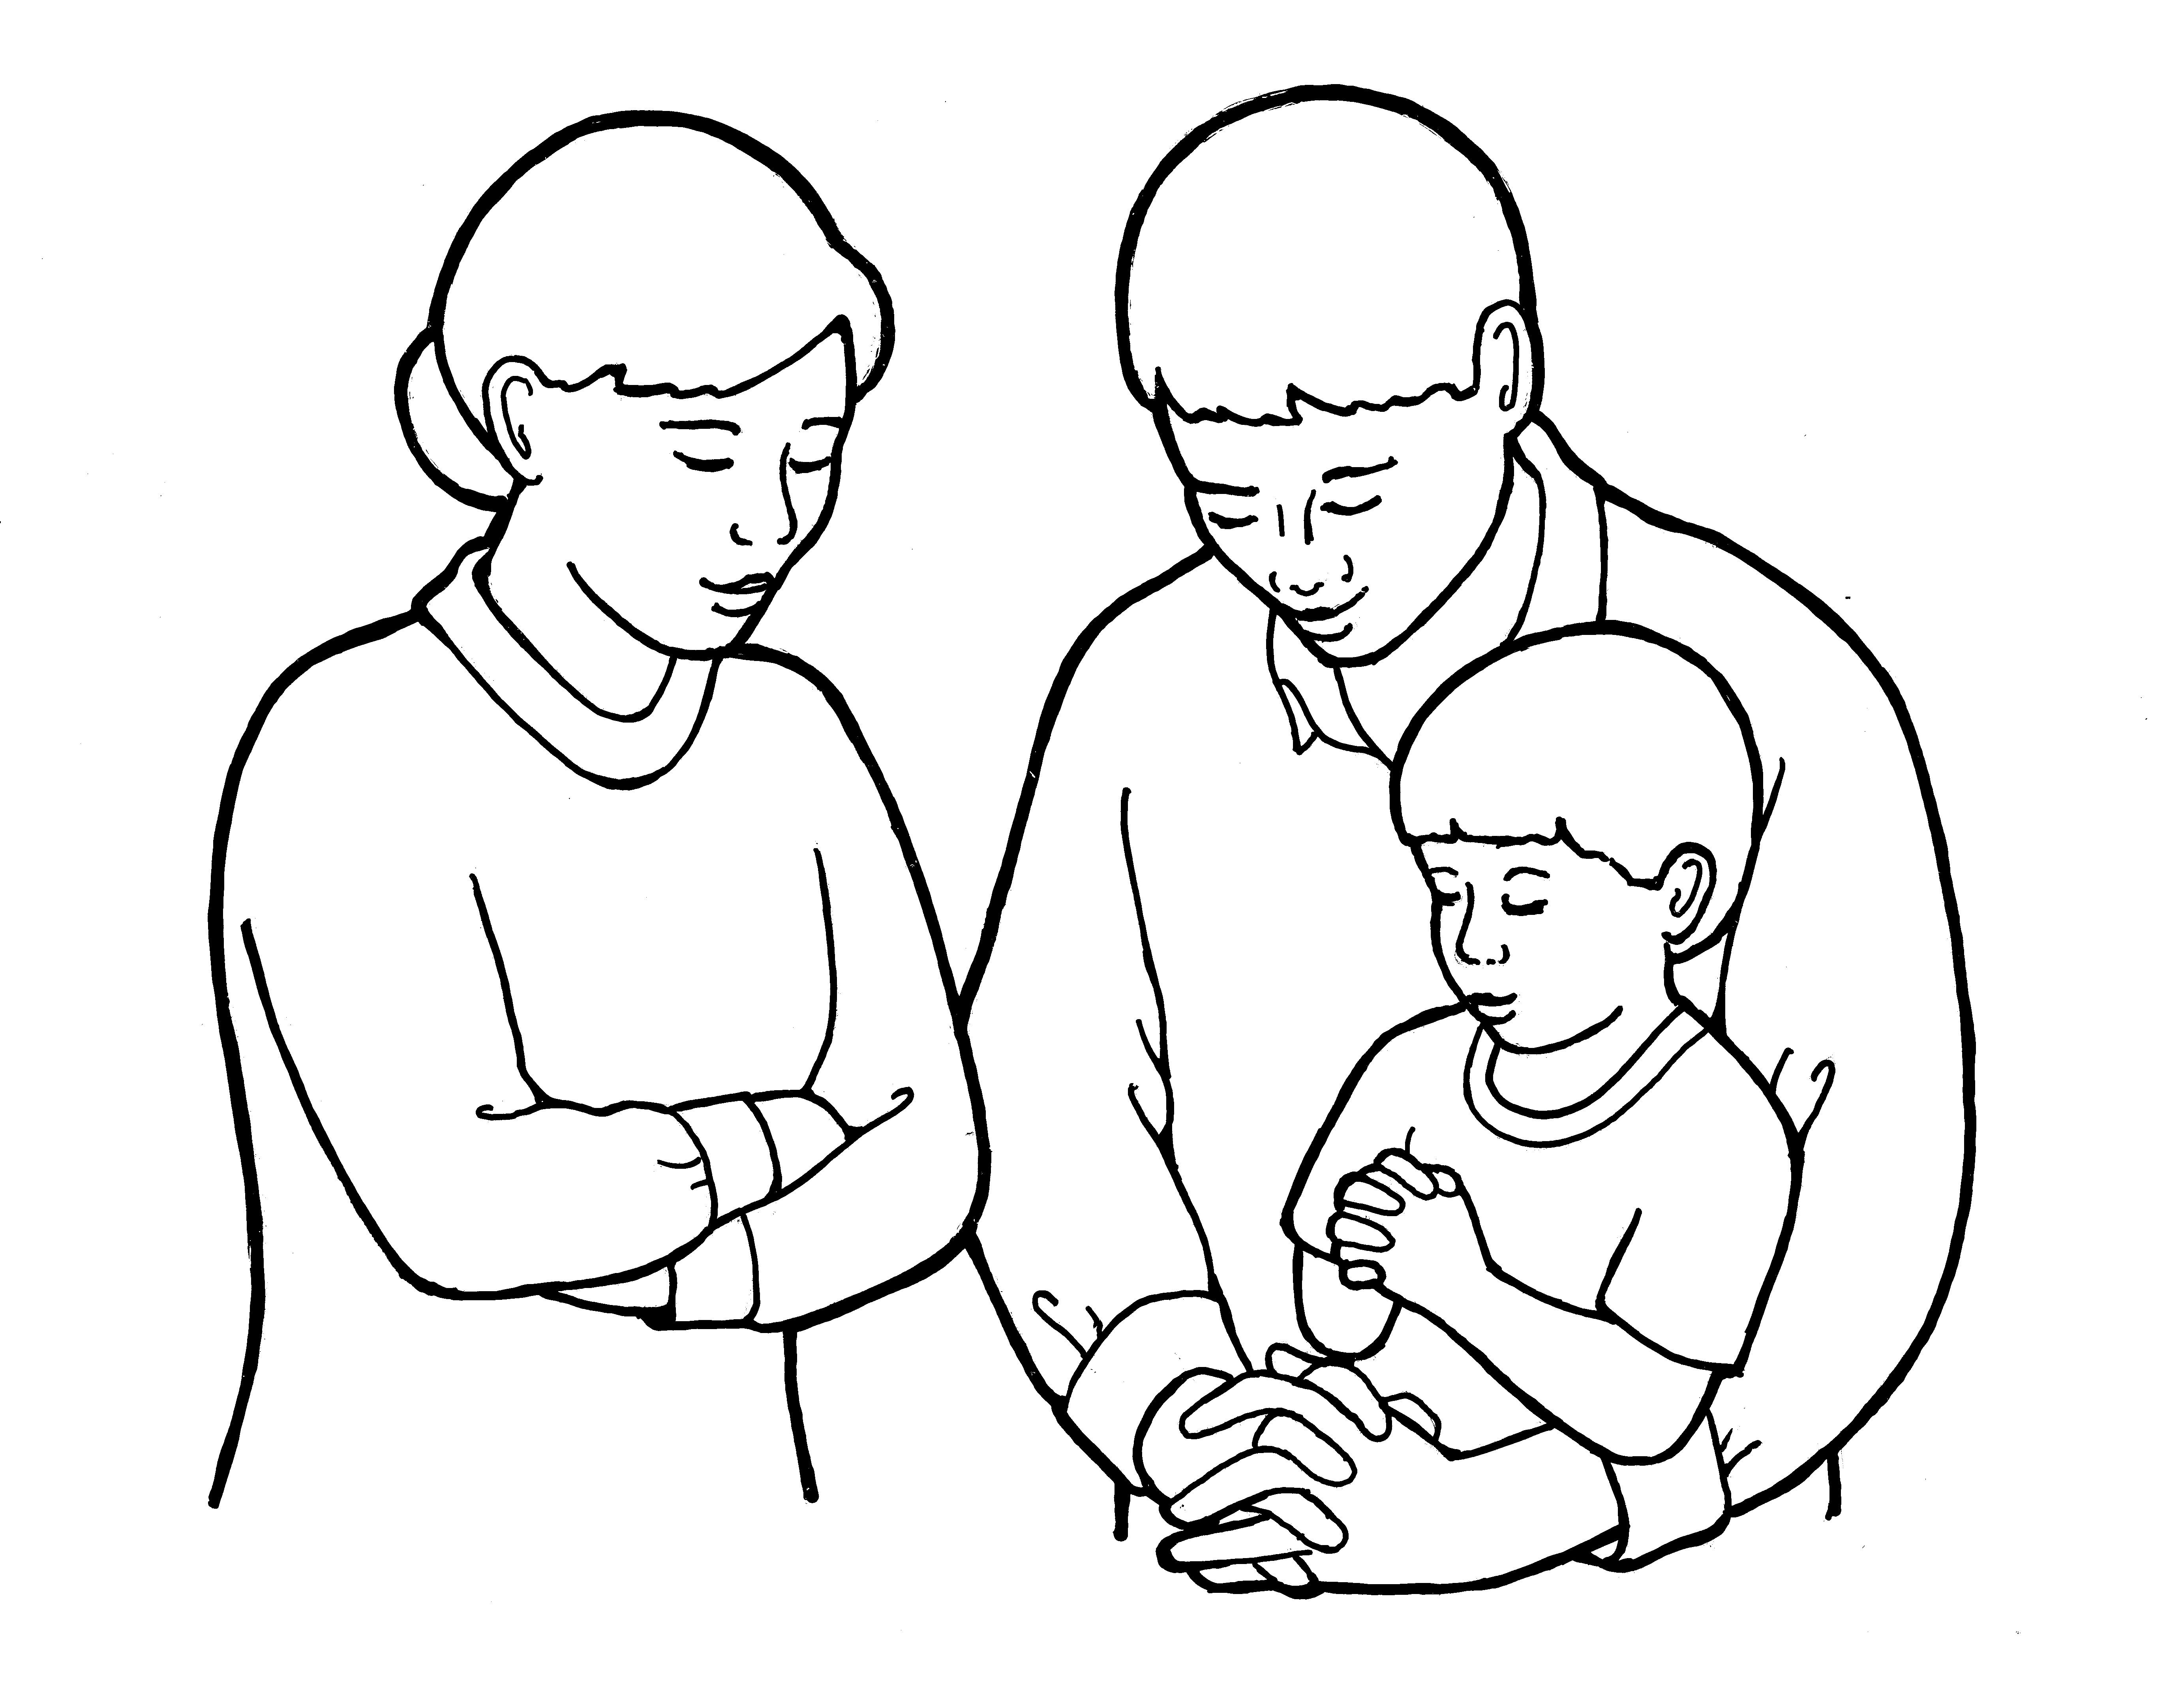 An illustration of parents praying with a young child, from the nursery manual Behold Your Little Ones (2008), page 55.